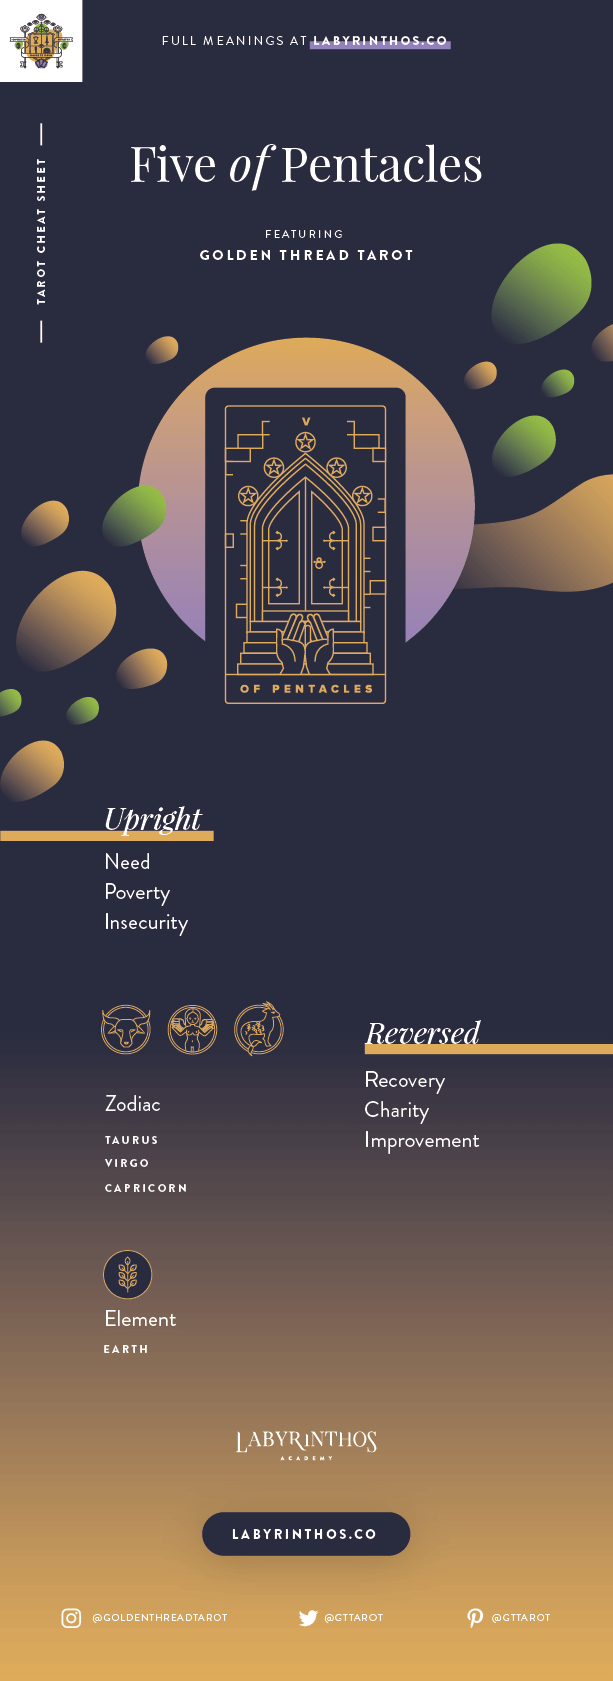 Five of Pentacles Meaning - Tarot Card Meanings Cheat Sheet. Art from Golden Thread Tarot.